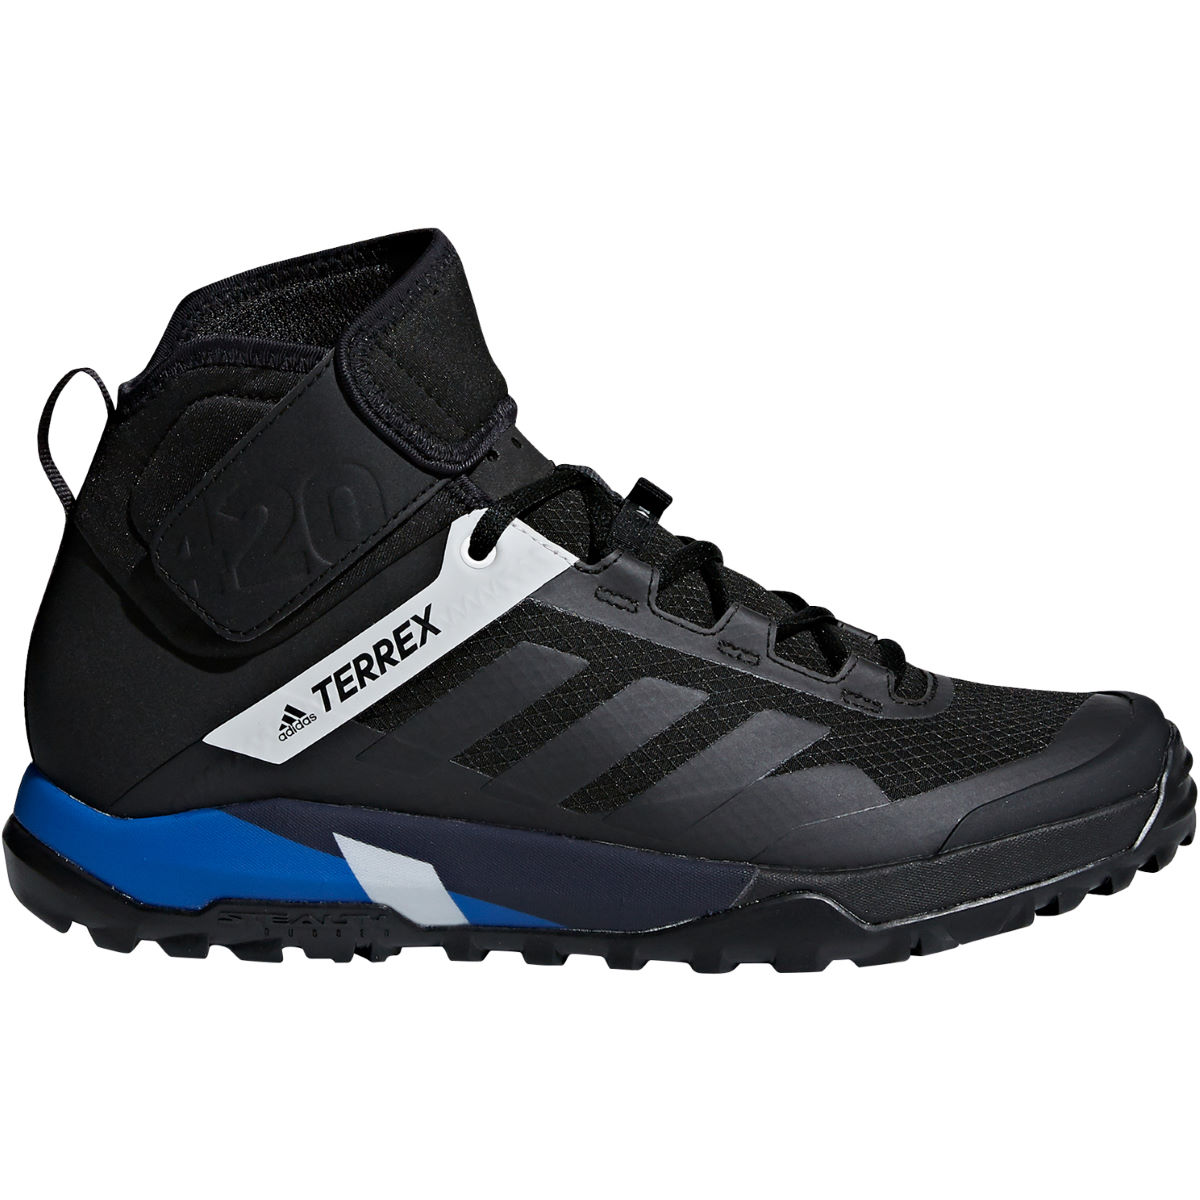 Chaussures adidas Terrex Trail Cross Protect - 7 Chaussures de vélo